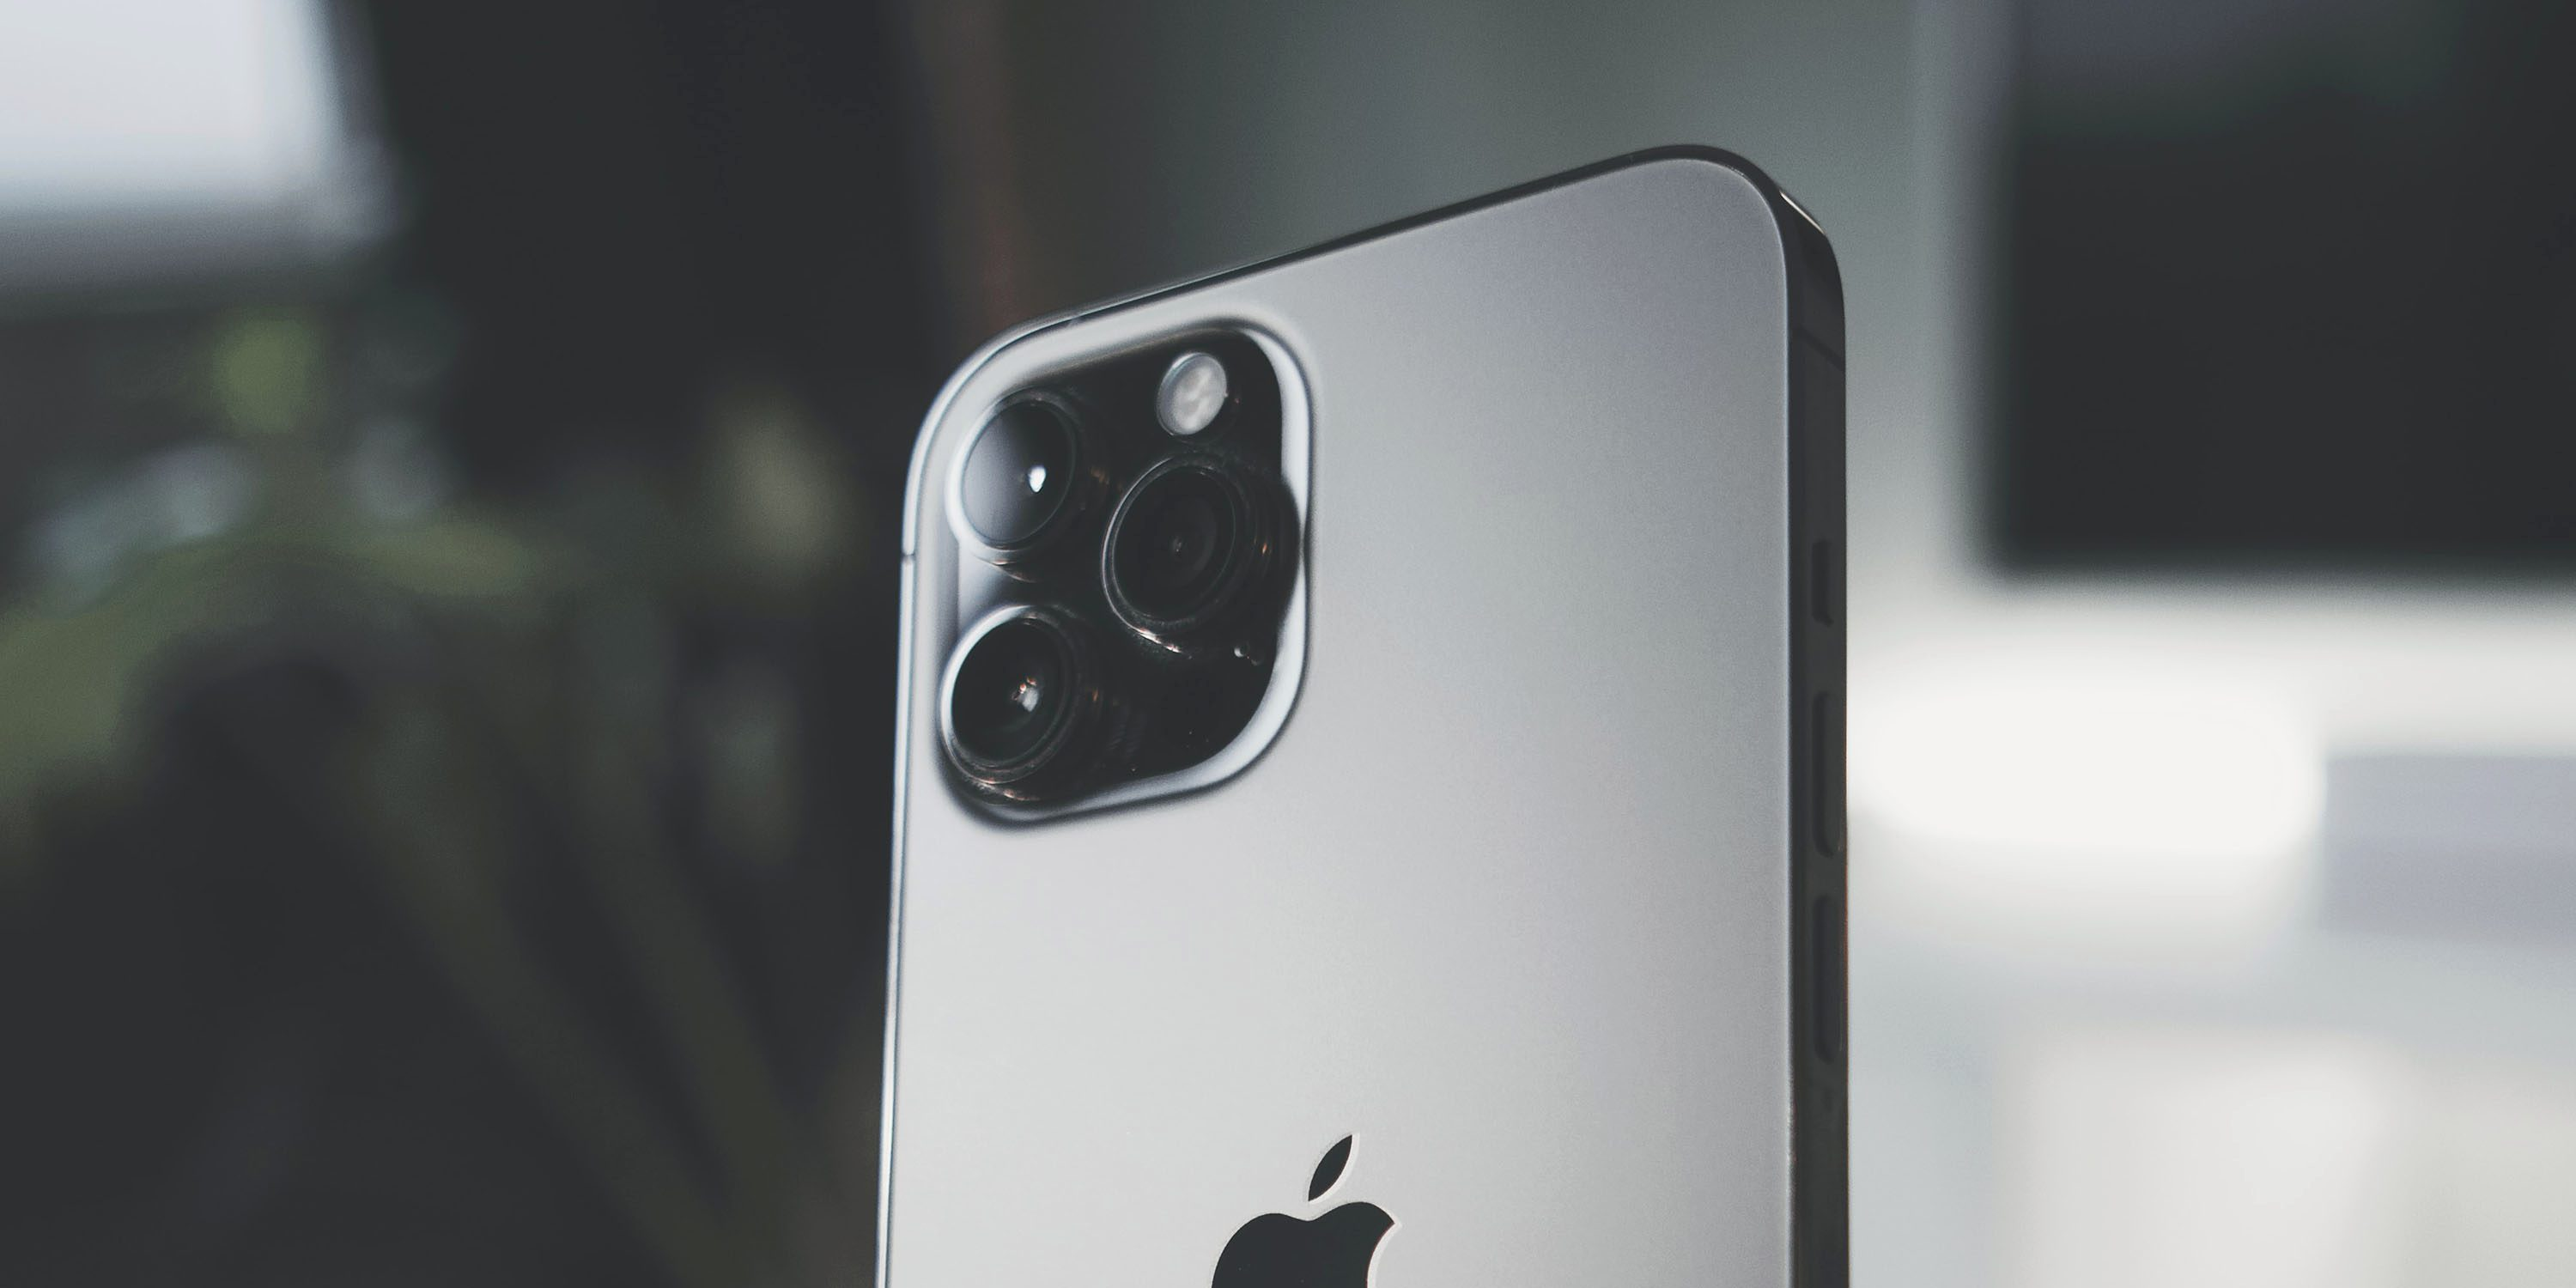 iPhone-13-Pro-Max-will-have-better-wide-angle-lens